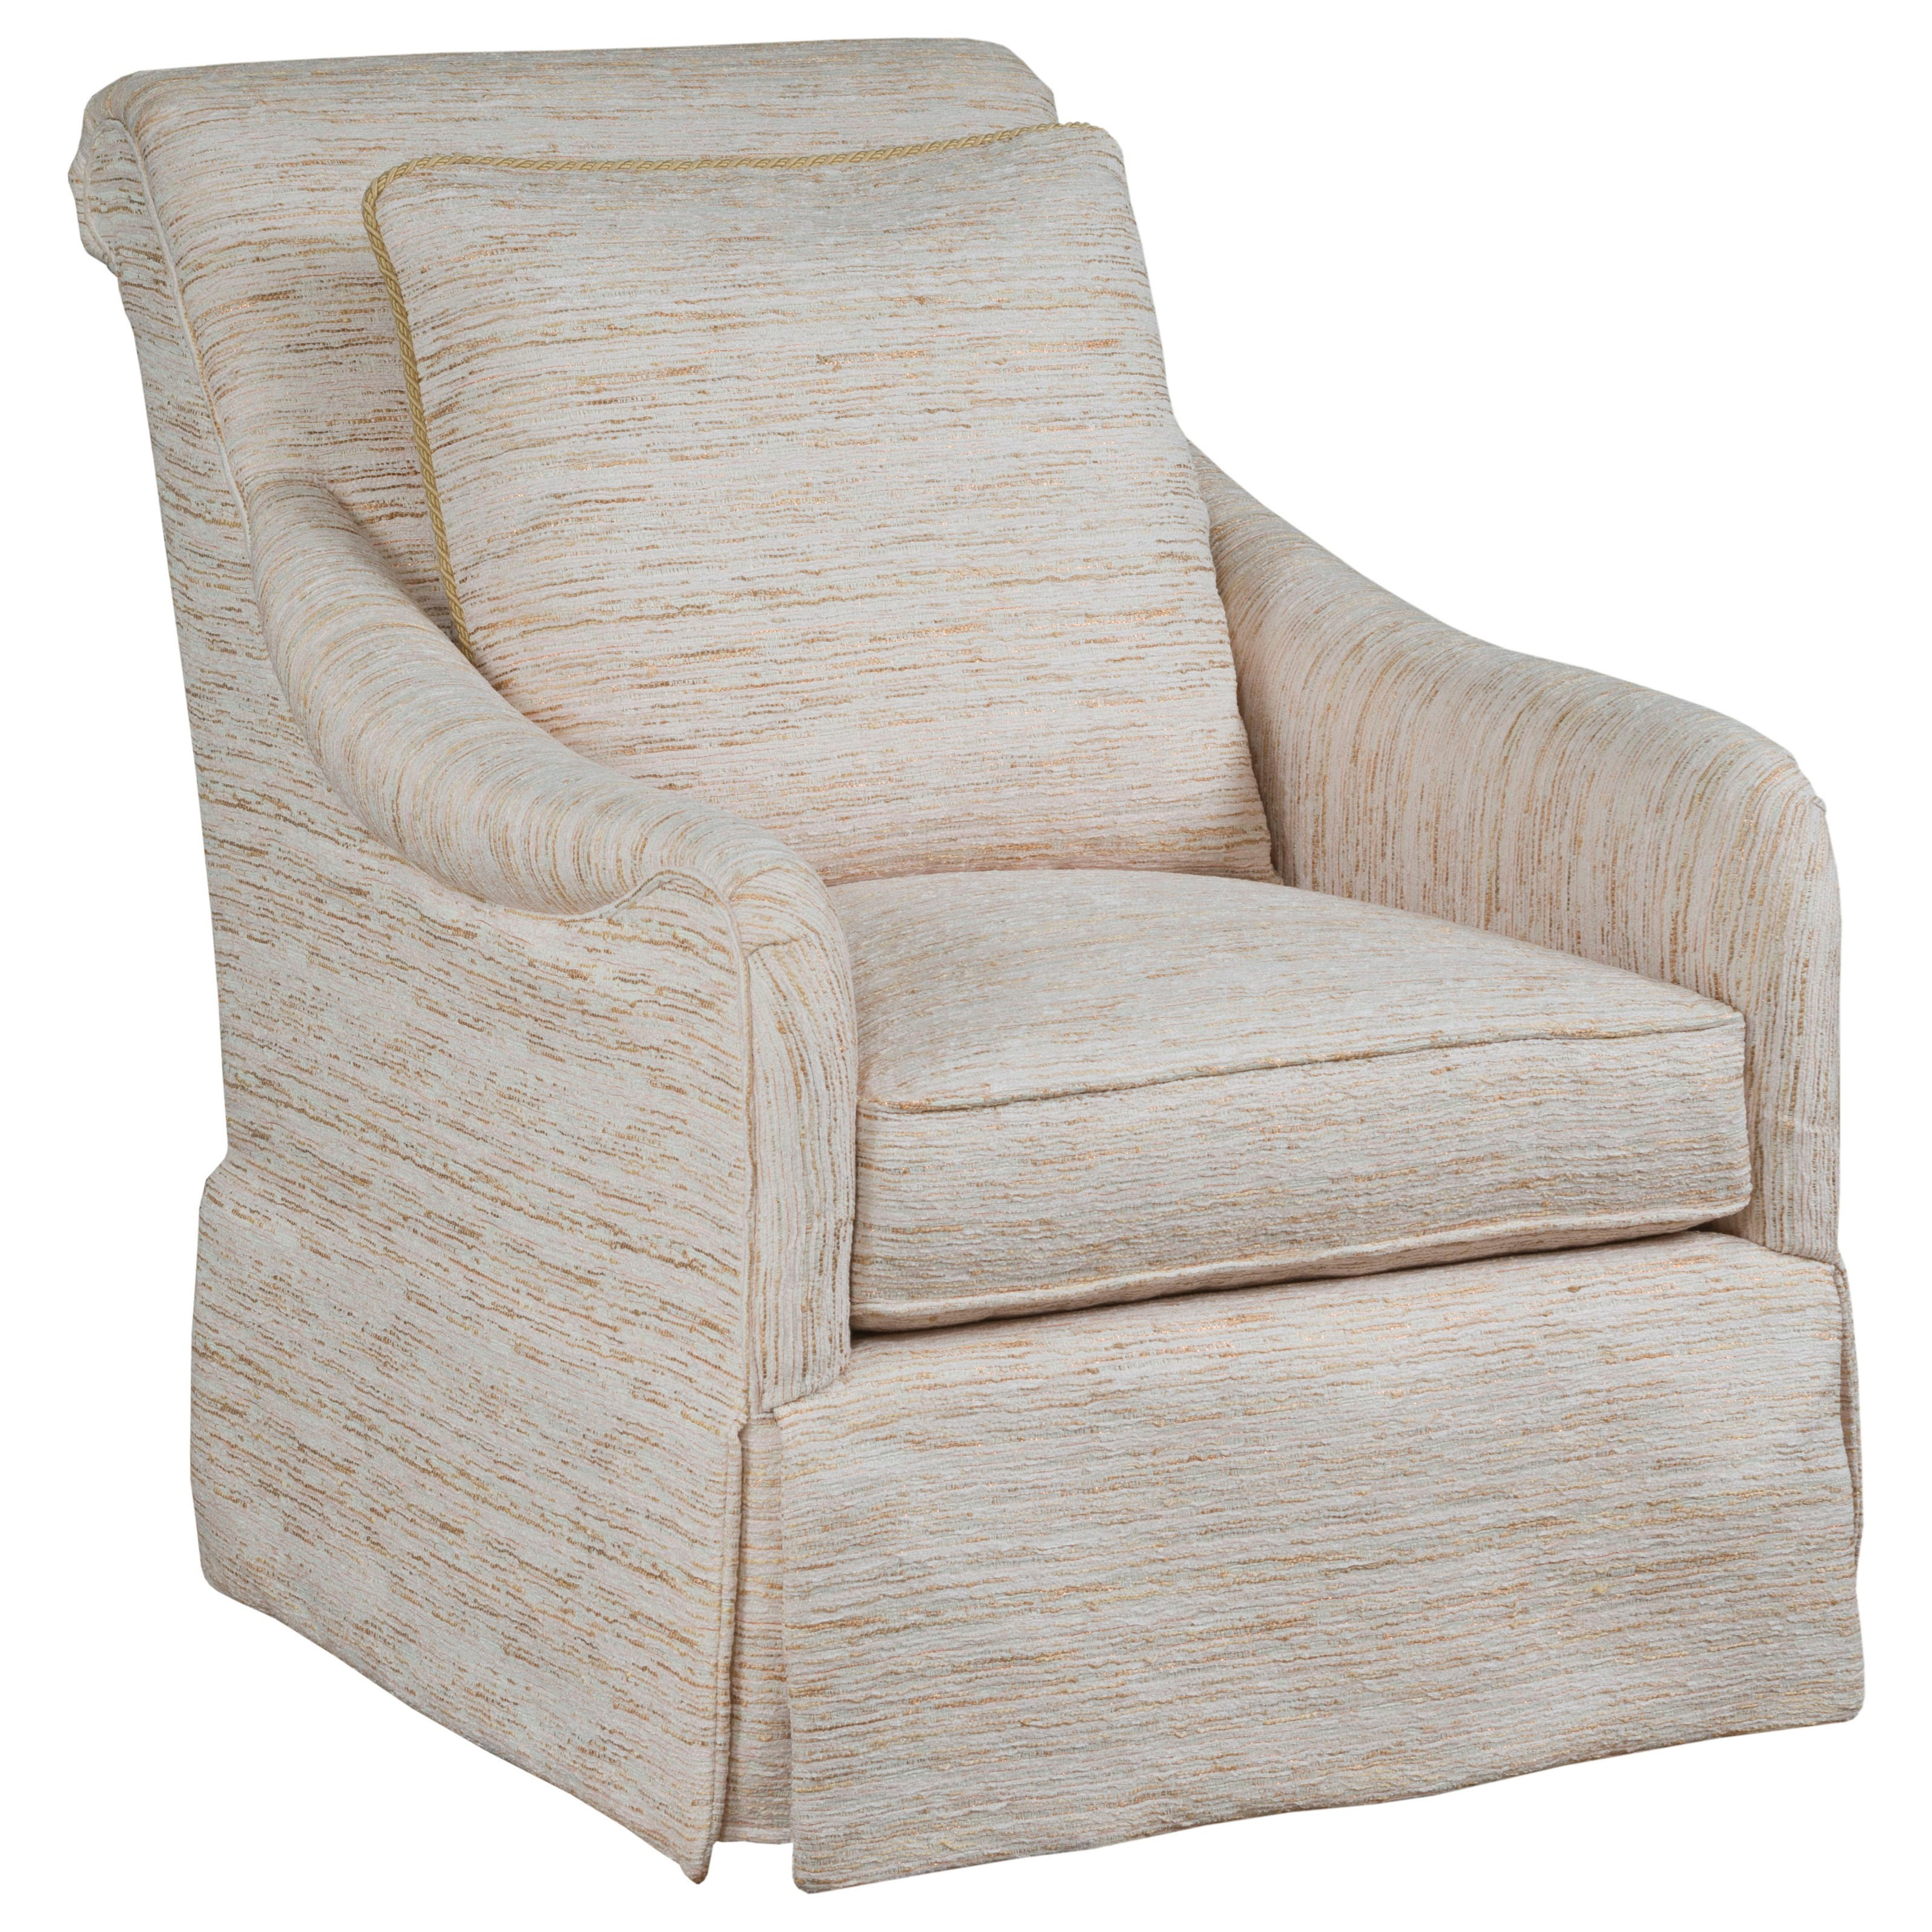 Joceylyn Upholstered Swivel Glider by Kincaid Furniture at Johnny Janosik